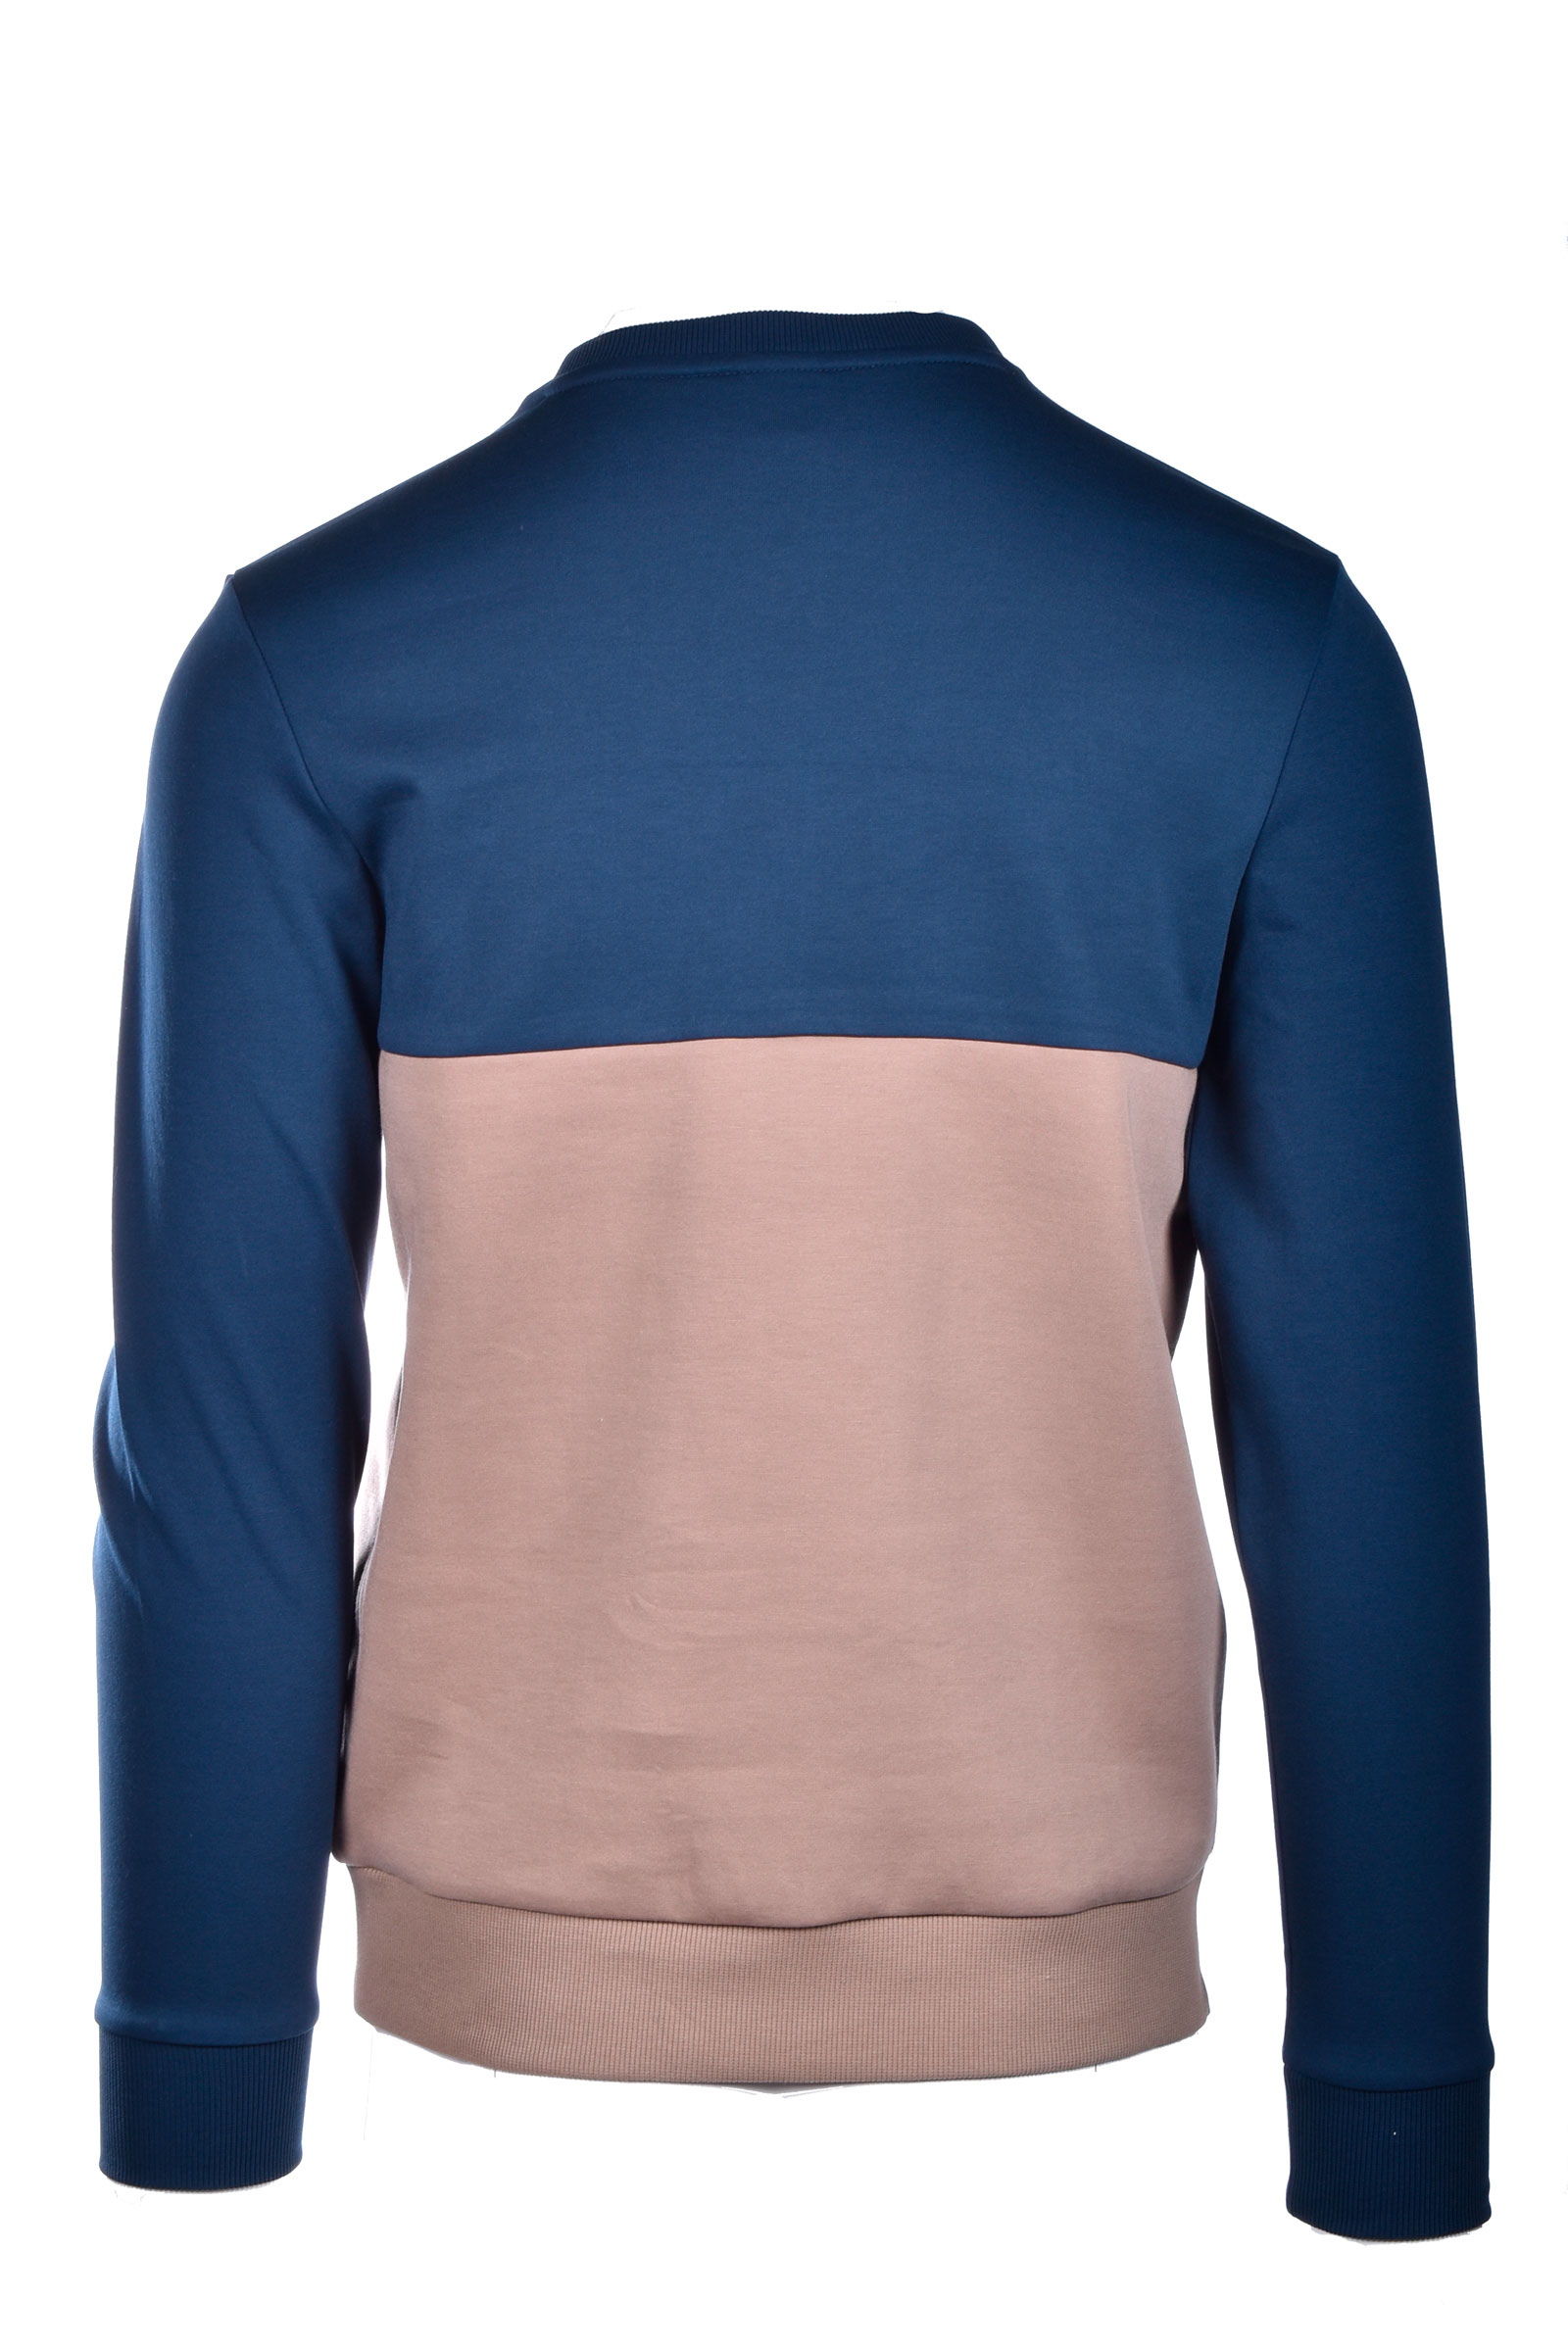 salbo Slim fit sweater with printed logo - blue/ beige BOSS | Sweatshirt | 50434921960